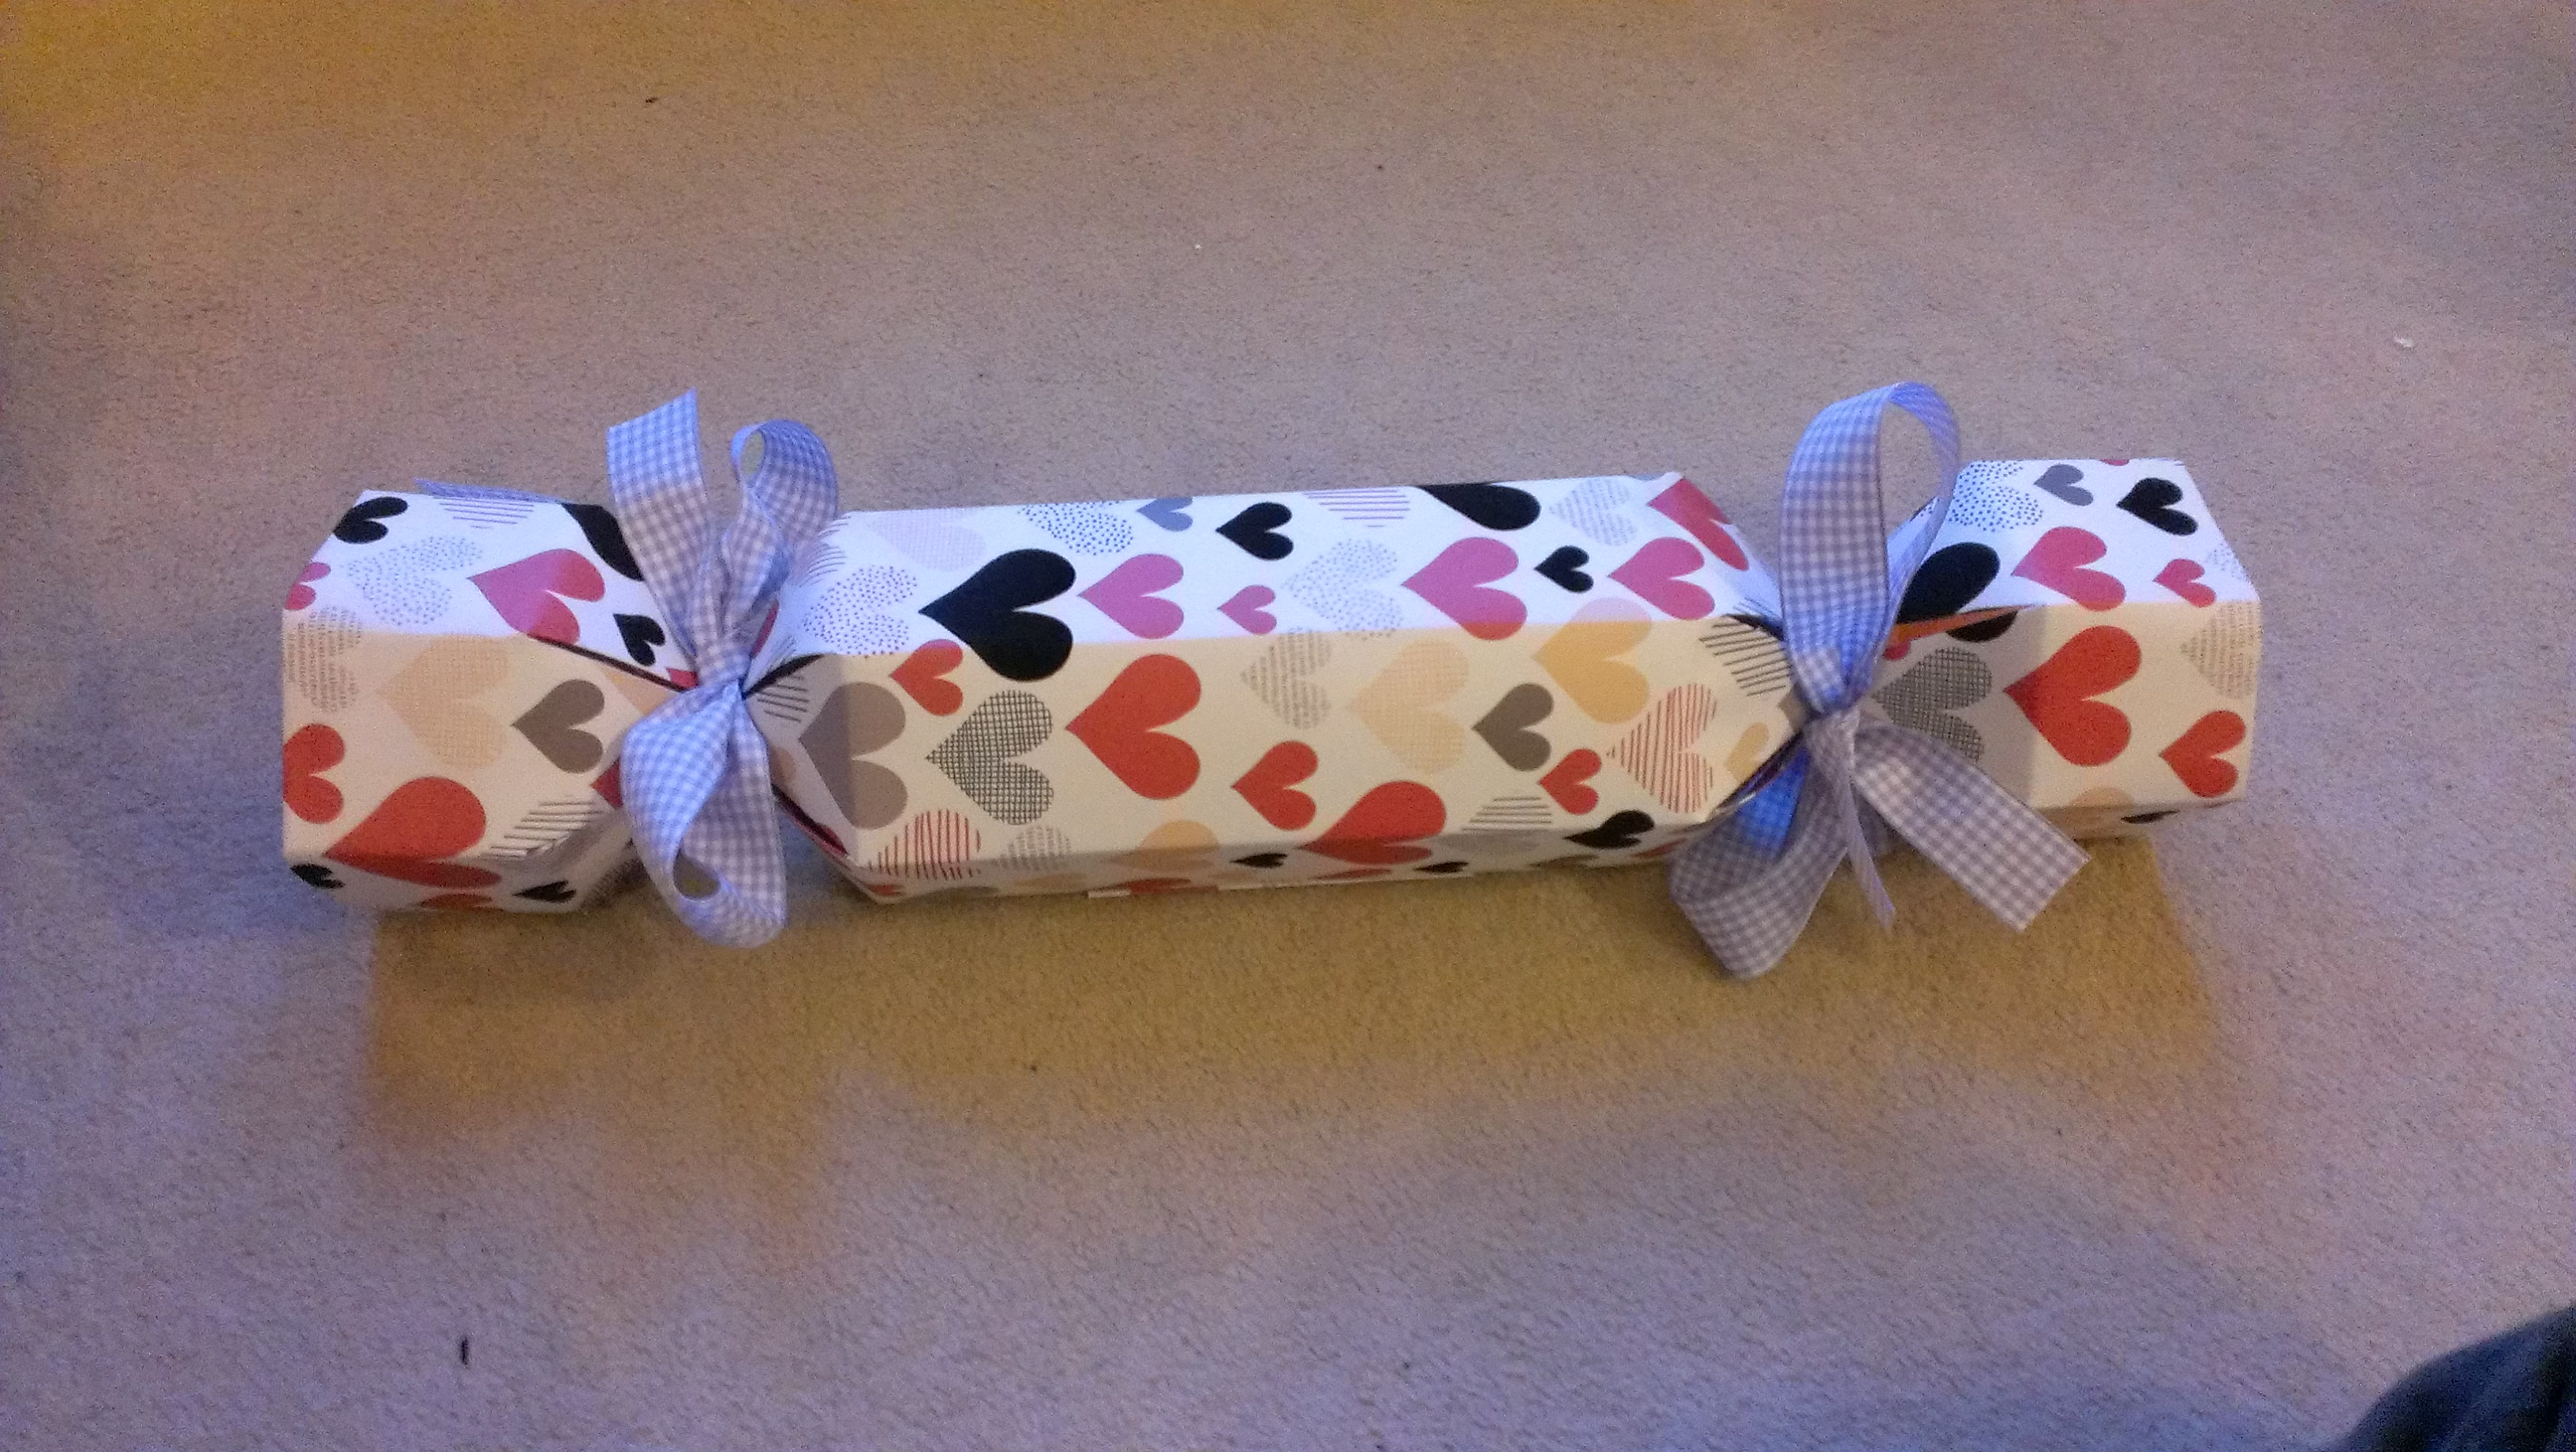 Picture of Giant Christmas Cracker